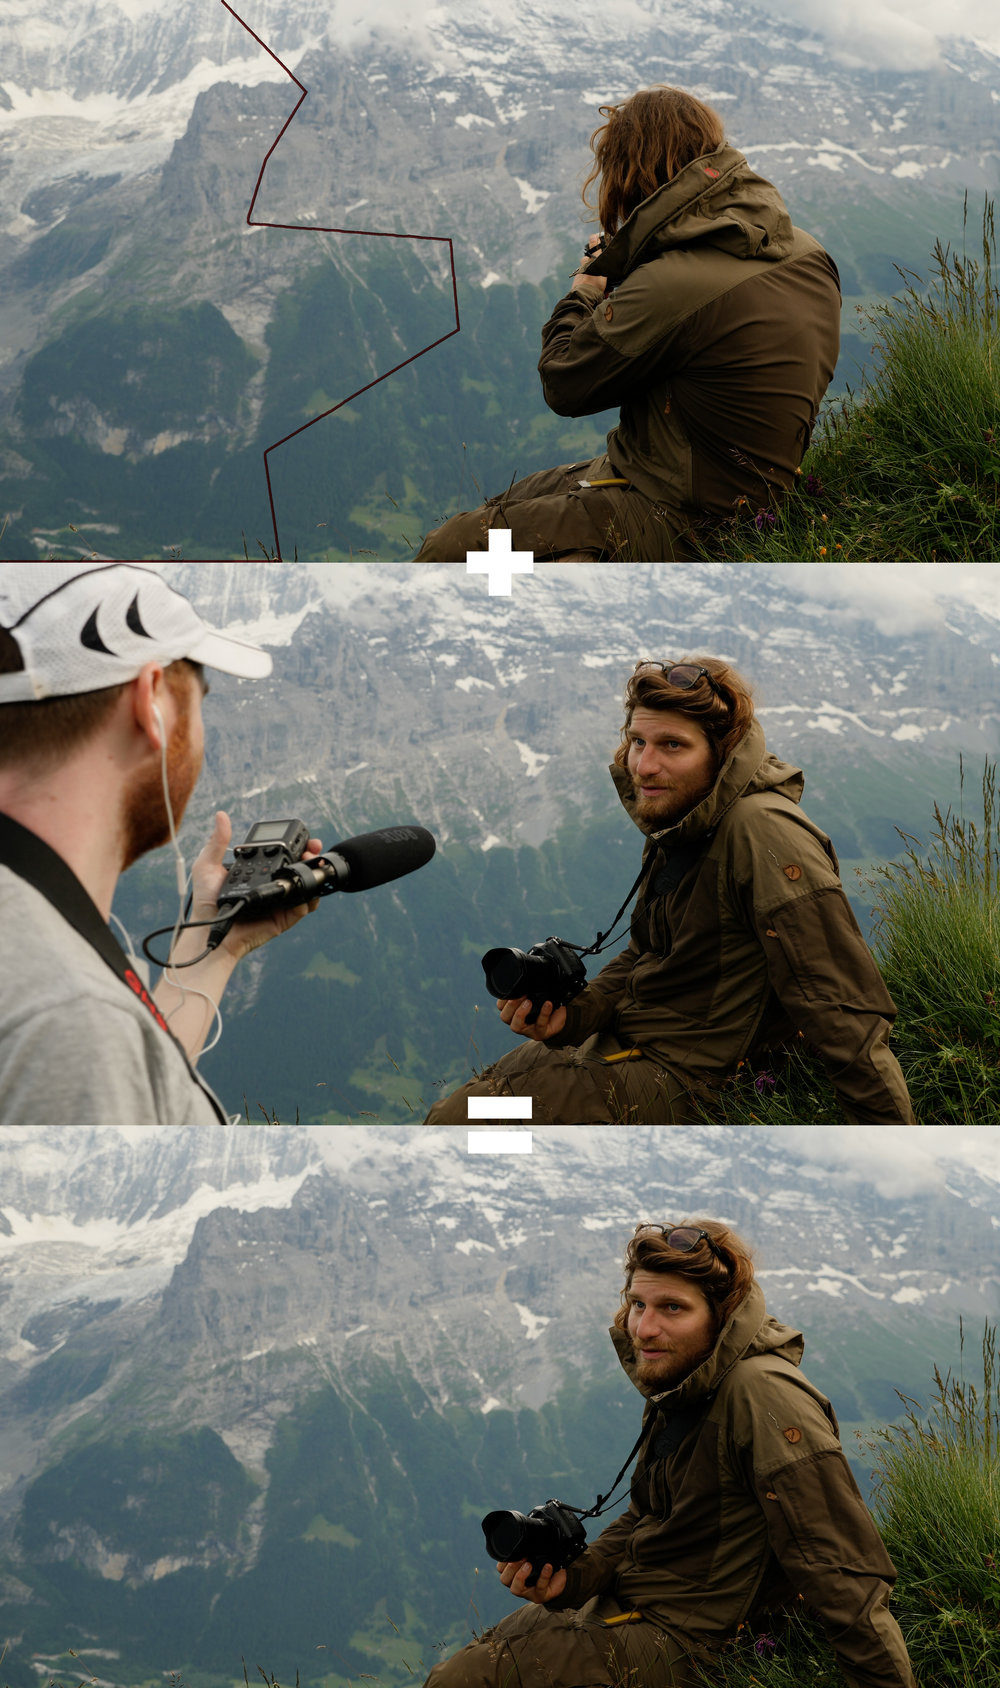 Interviewing Ben Grunow in Grindelwald, Switzerland.